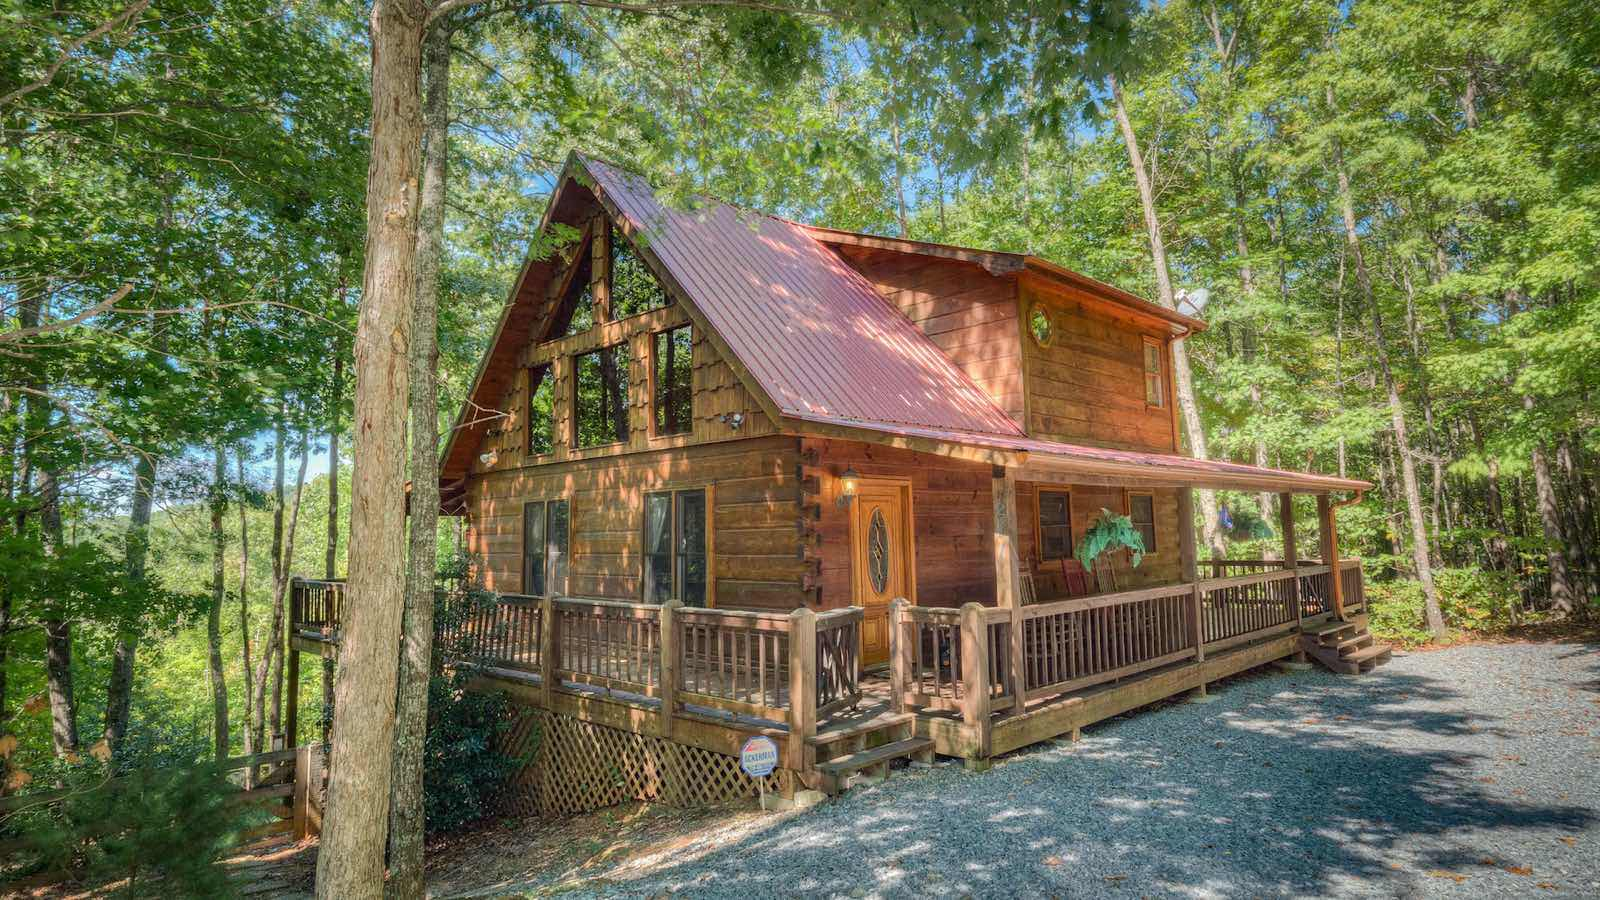 rentals nc cabin mountains ridge cabins friendly georgia sale vst pet helen rent houses for ga mountain blue